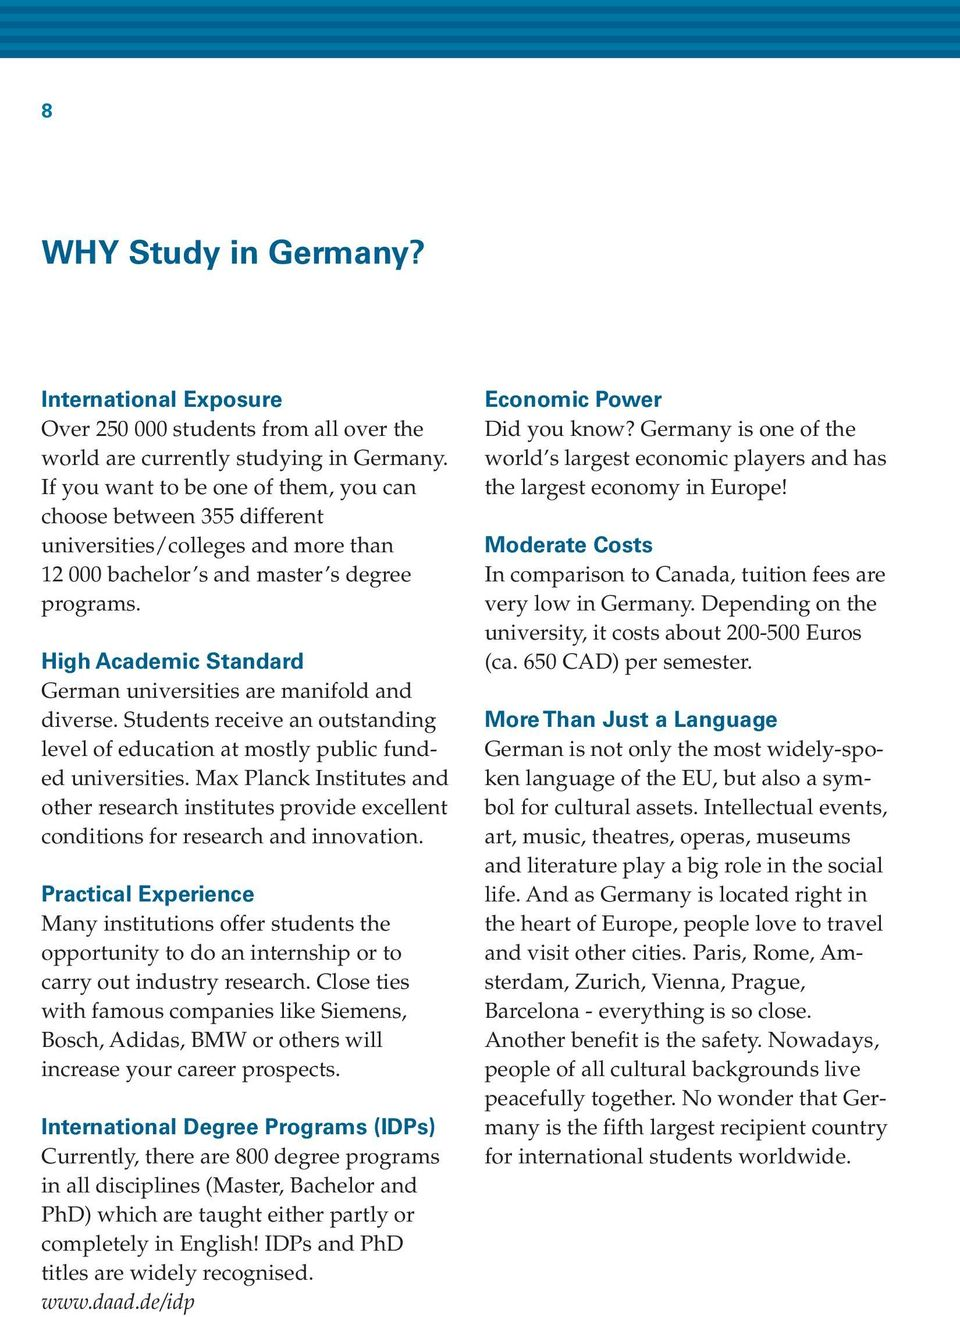 High Academic Standard German universities are manifold and diverse. Students receive an outstanding level of education at mostly public funded universities.